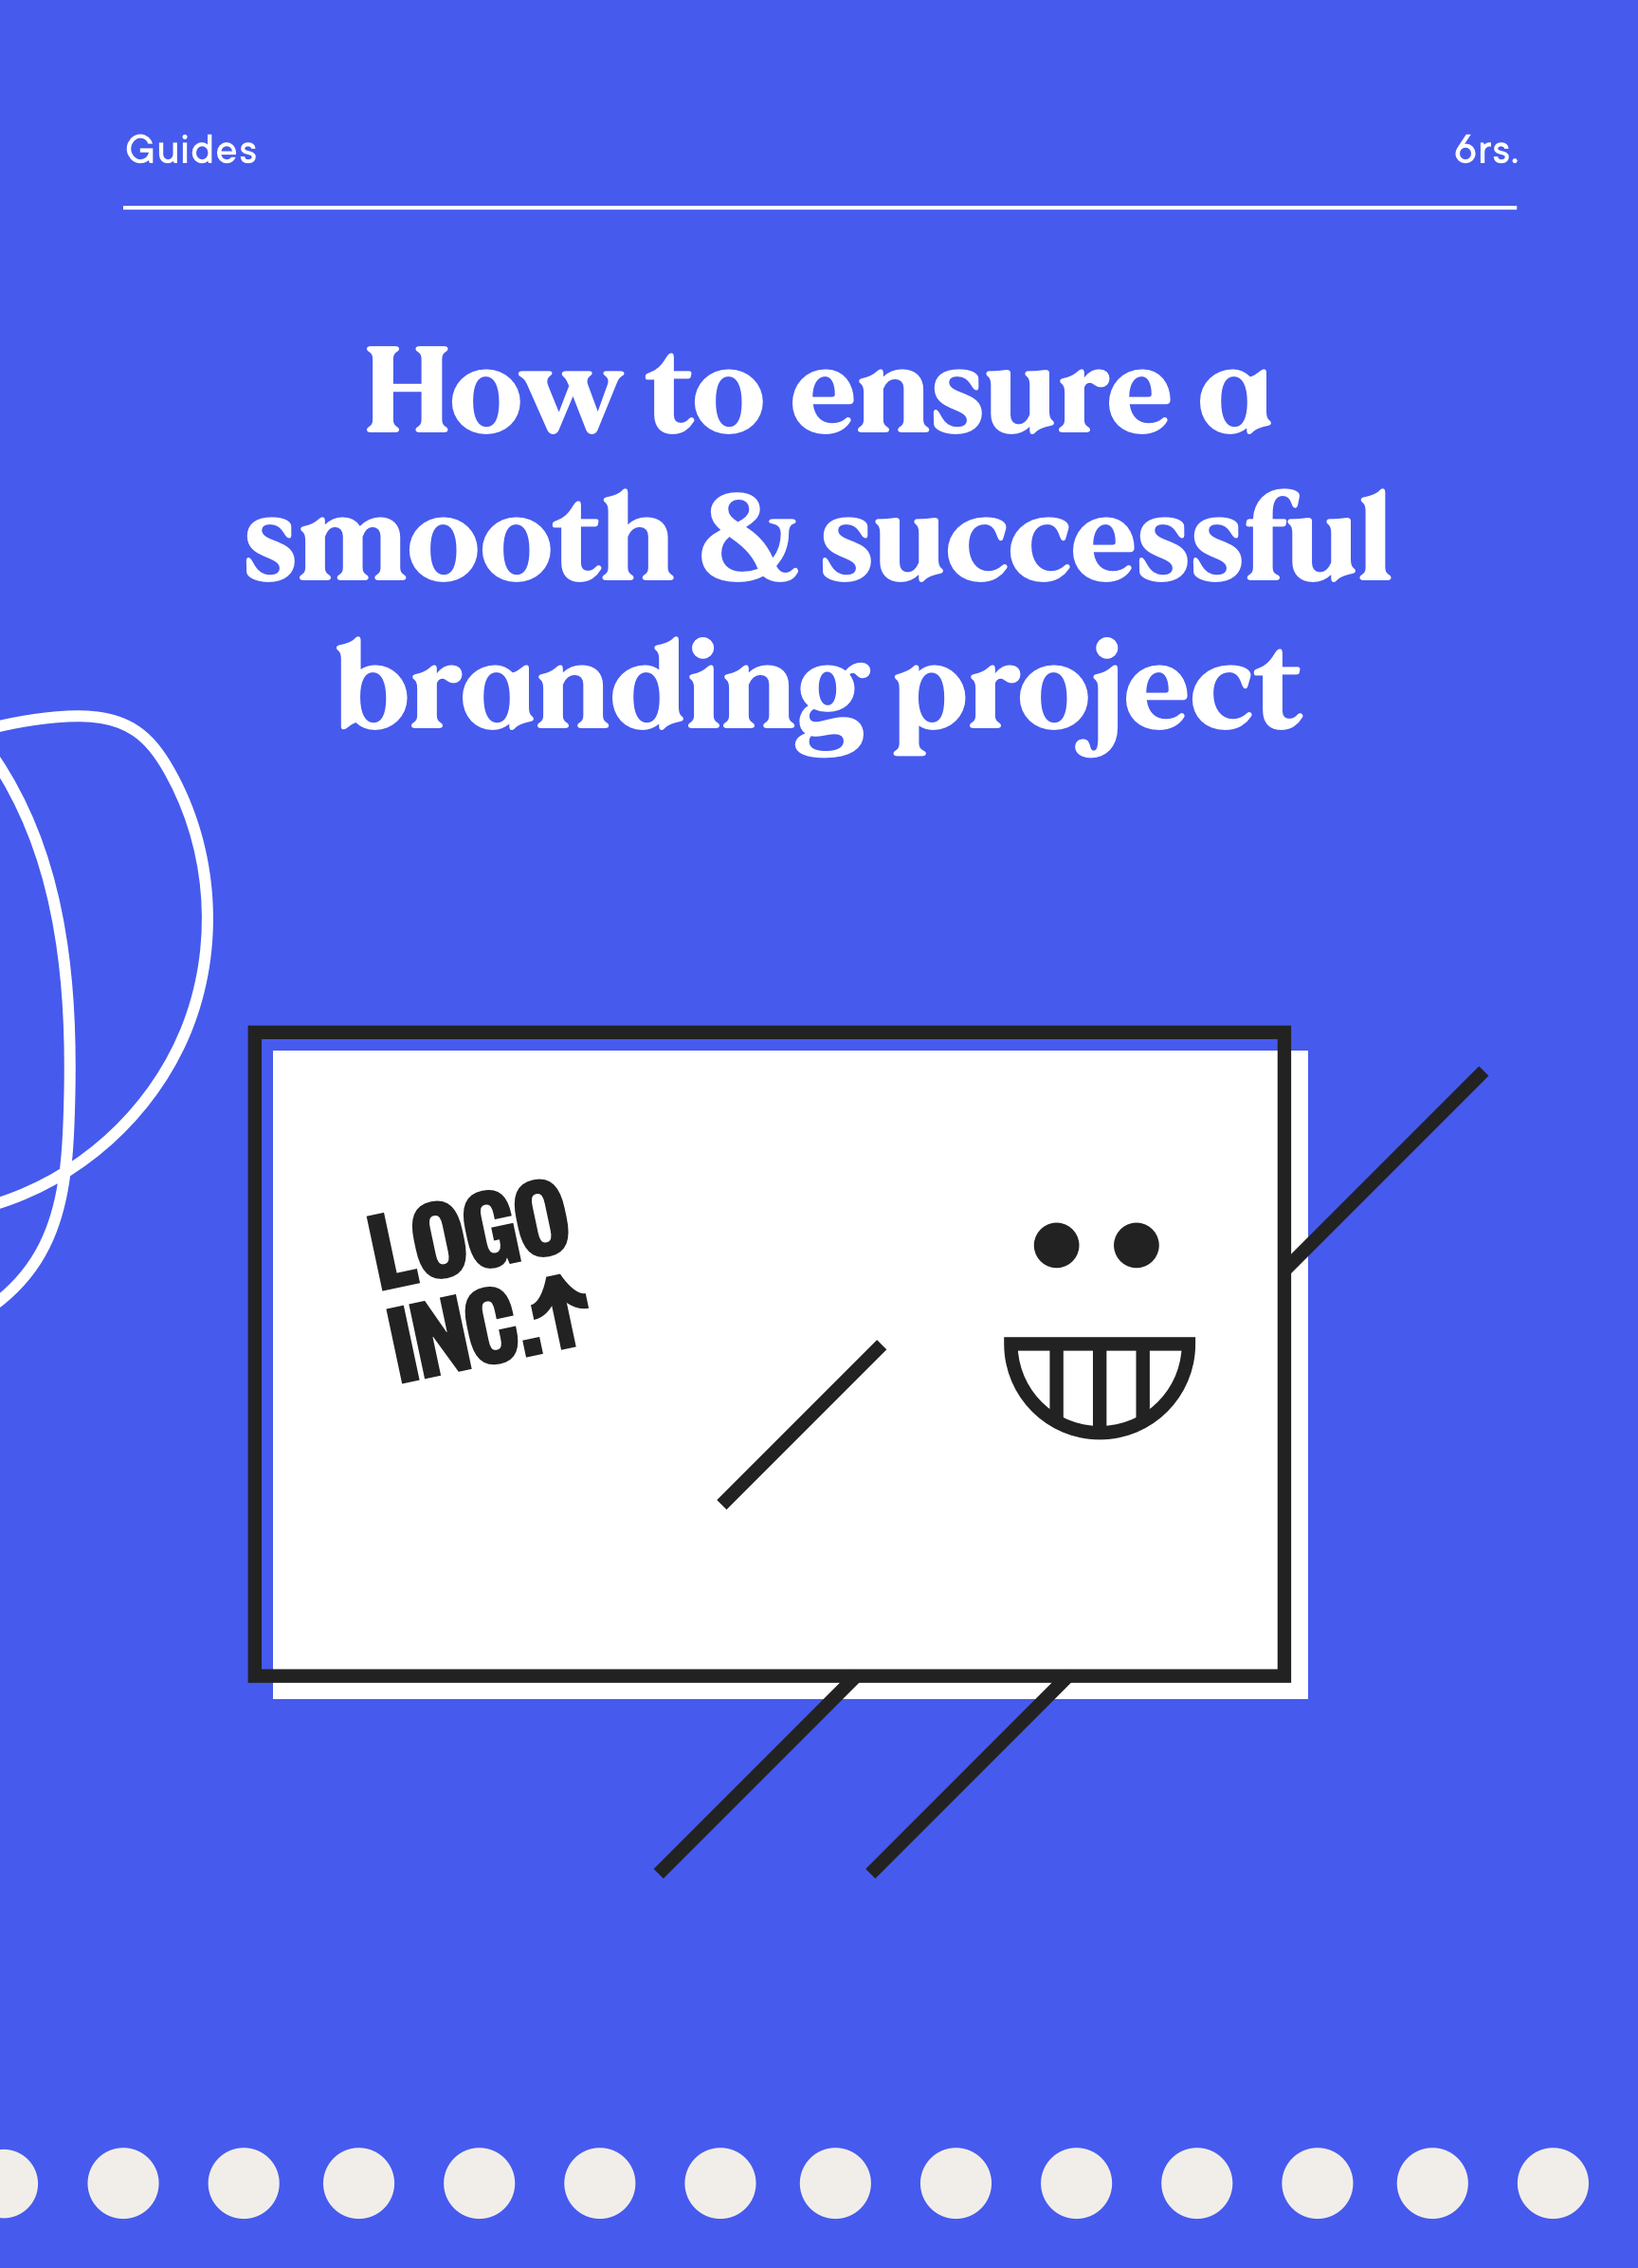 Guide cover - How to ensure a smooth and successful branding project